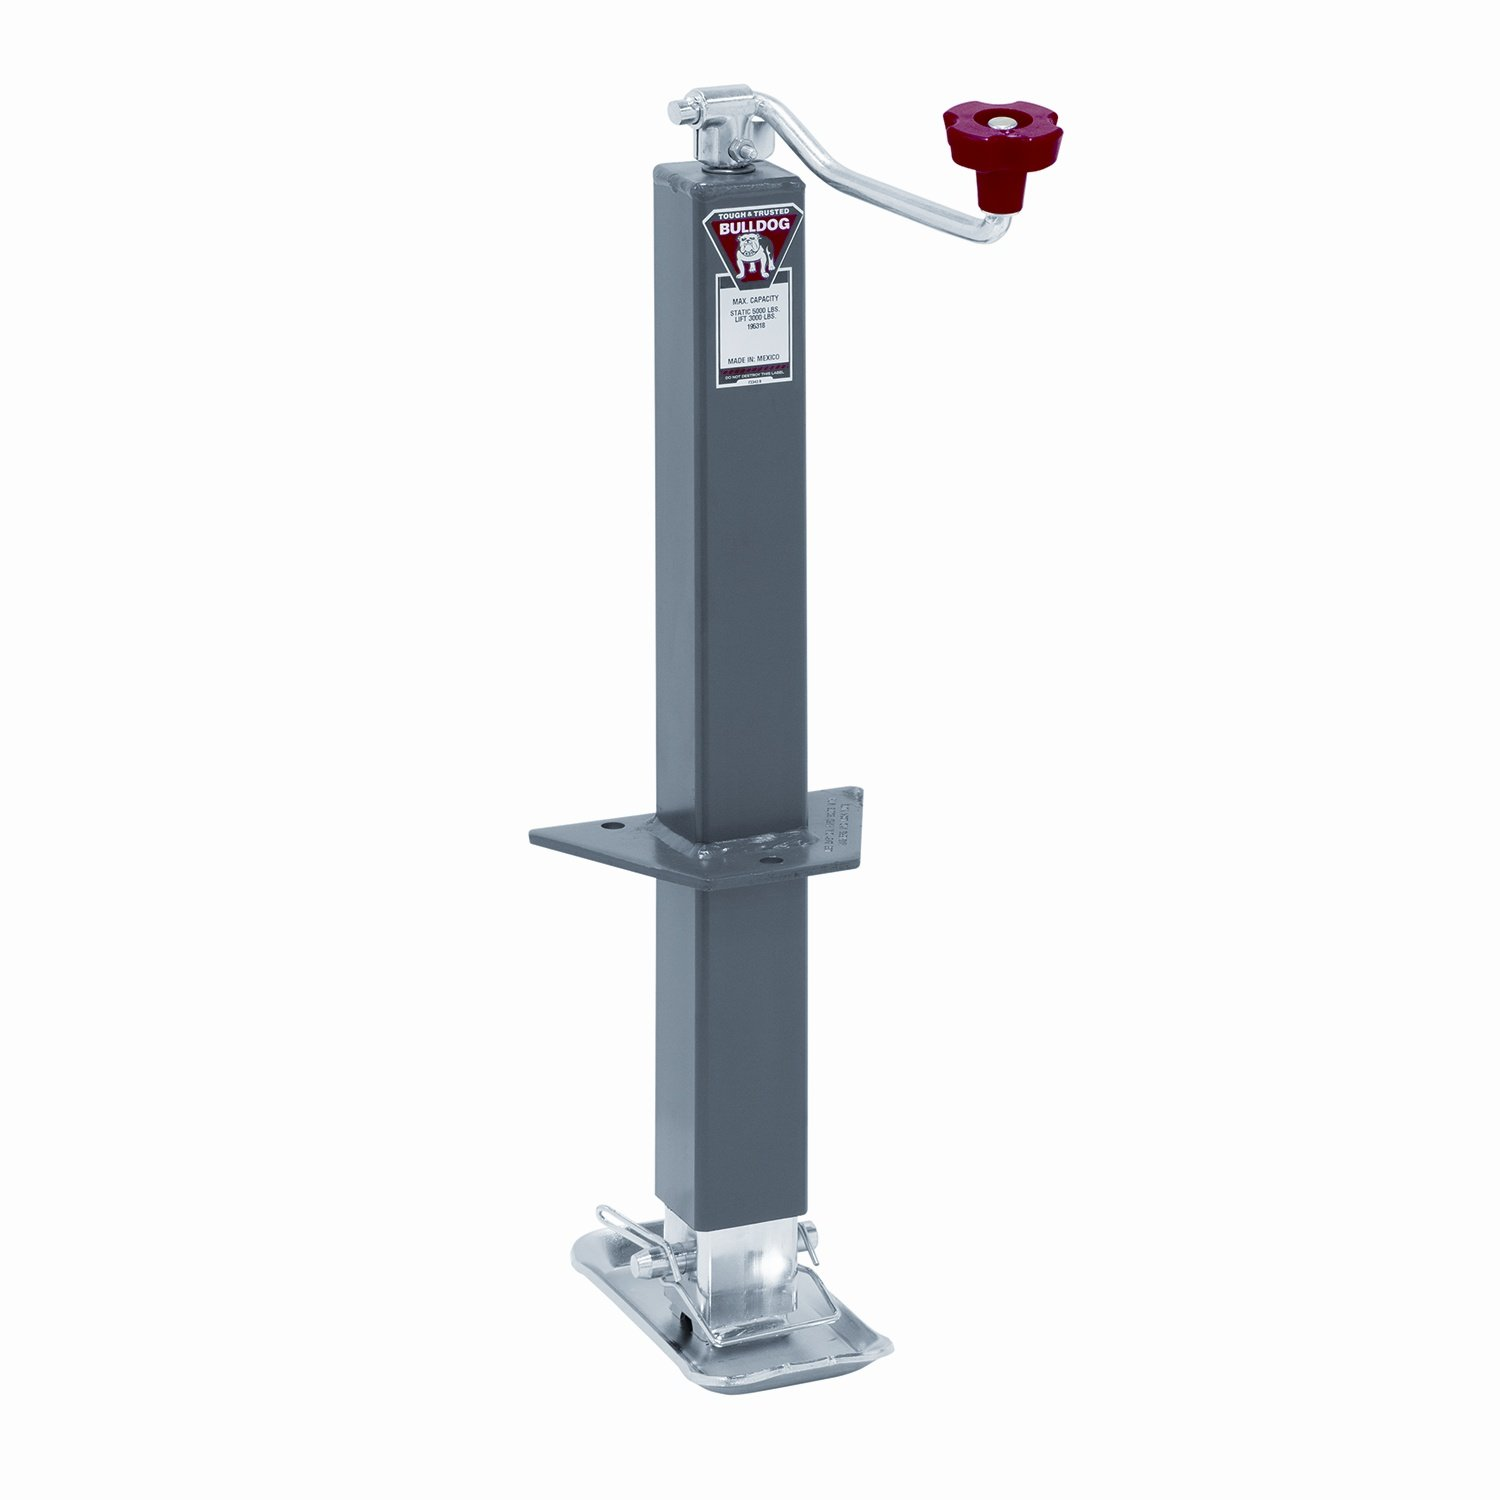 Bulldog 195318 Square Jack, 5000 lb. Load Capacity